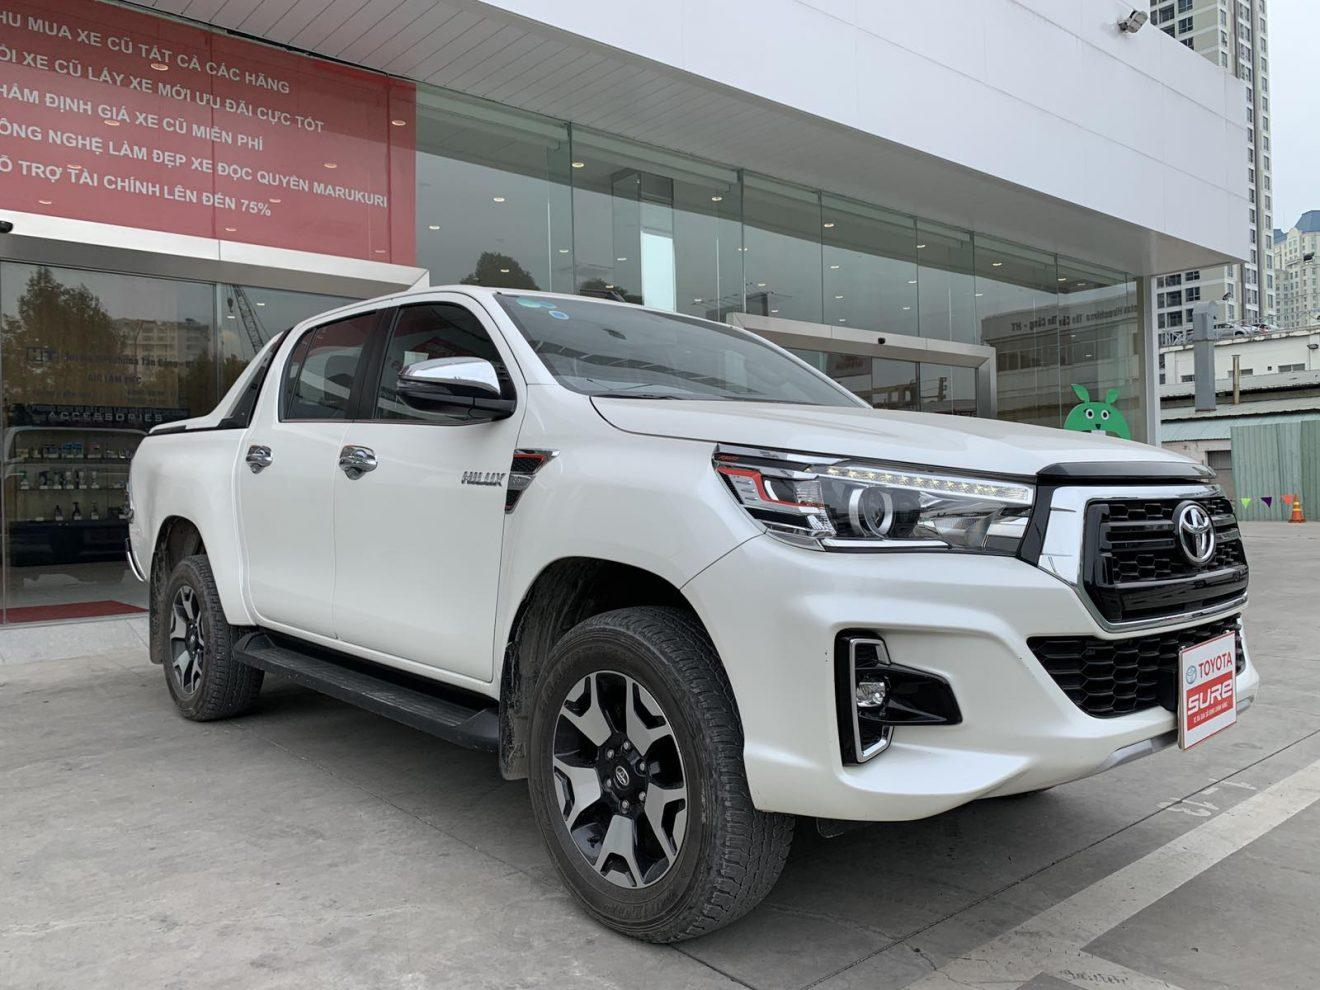 HILUX 2.8 4×4 AT